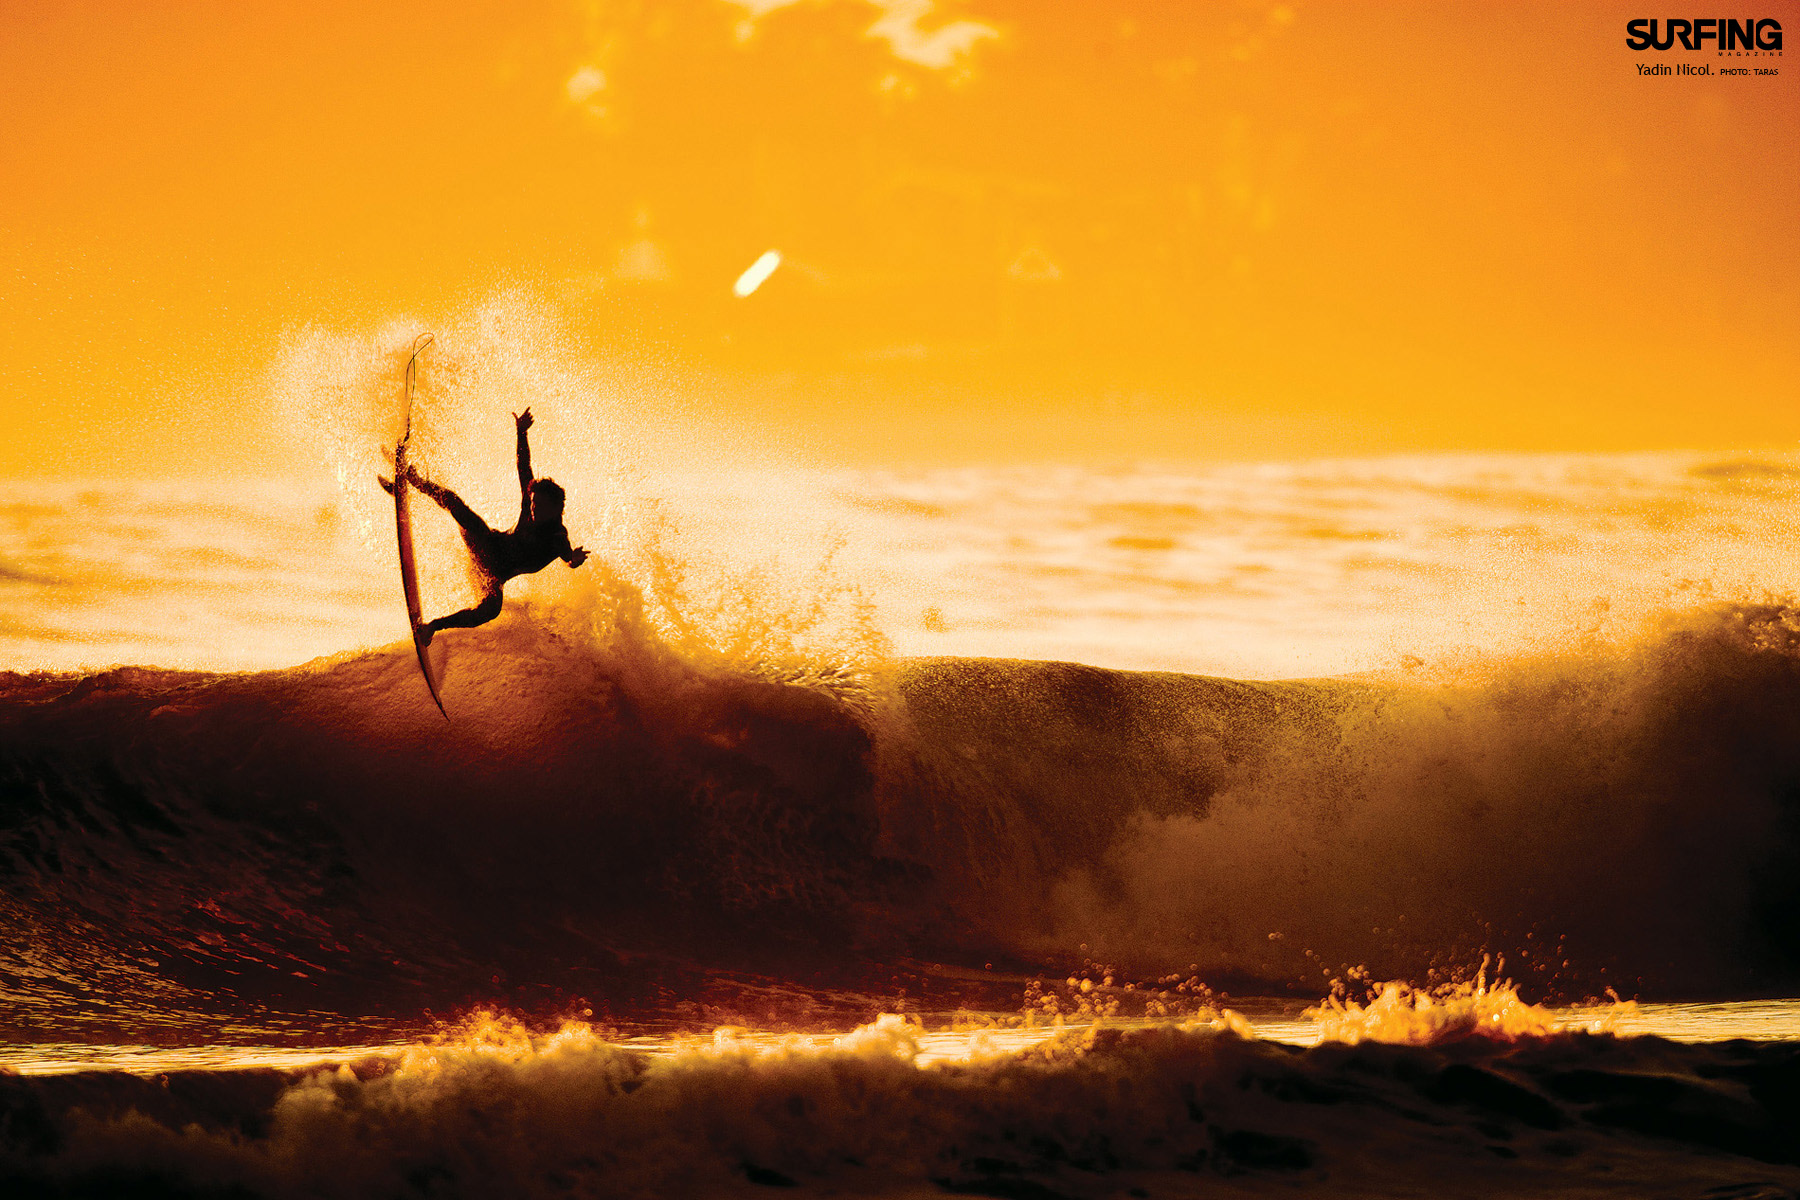 surfing images golden waves hd wallpaper and background photos